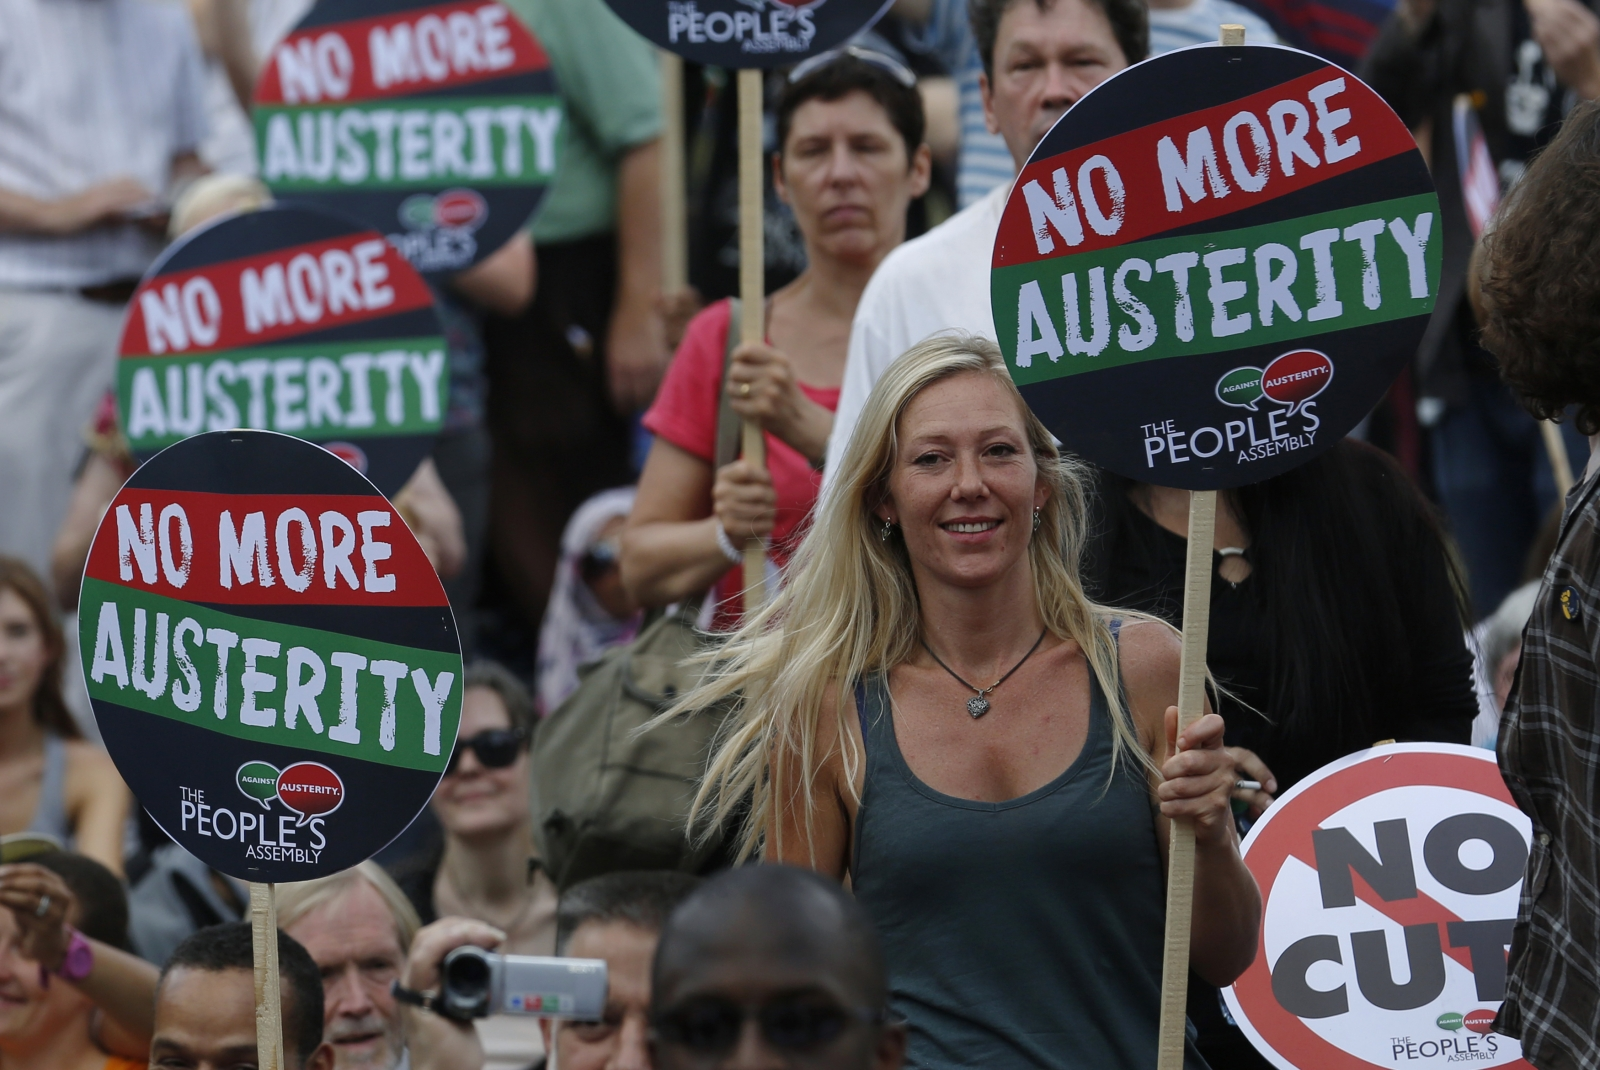 Anti-austerity protests